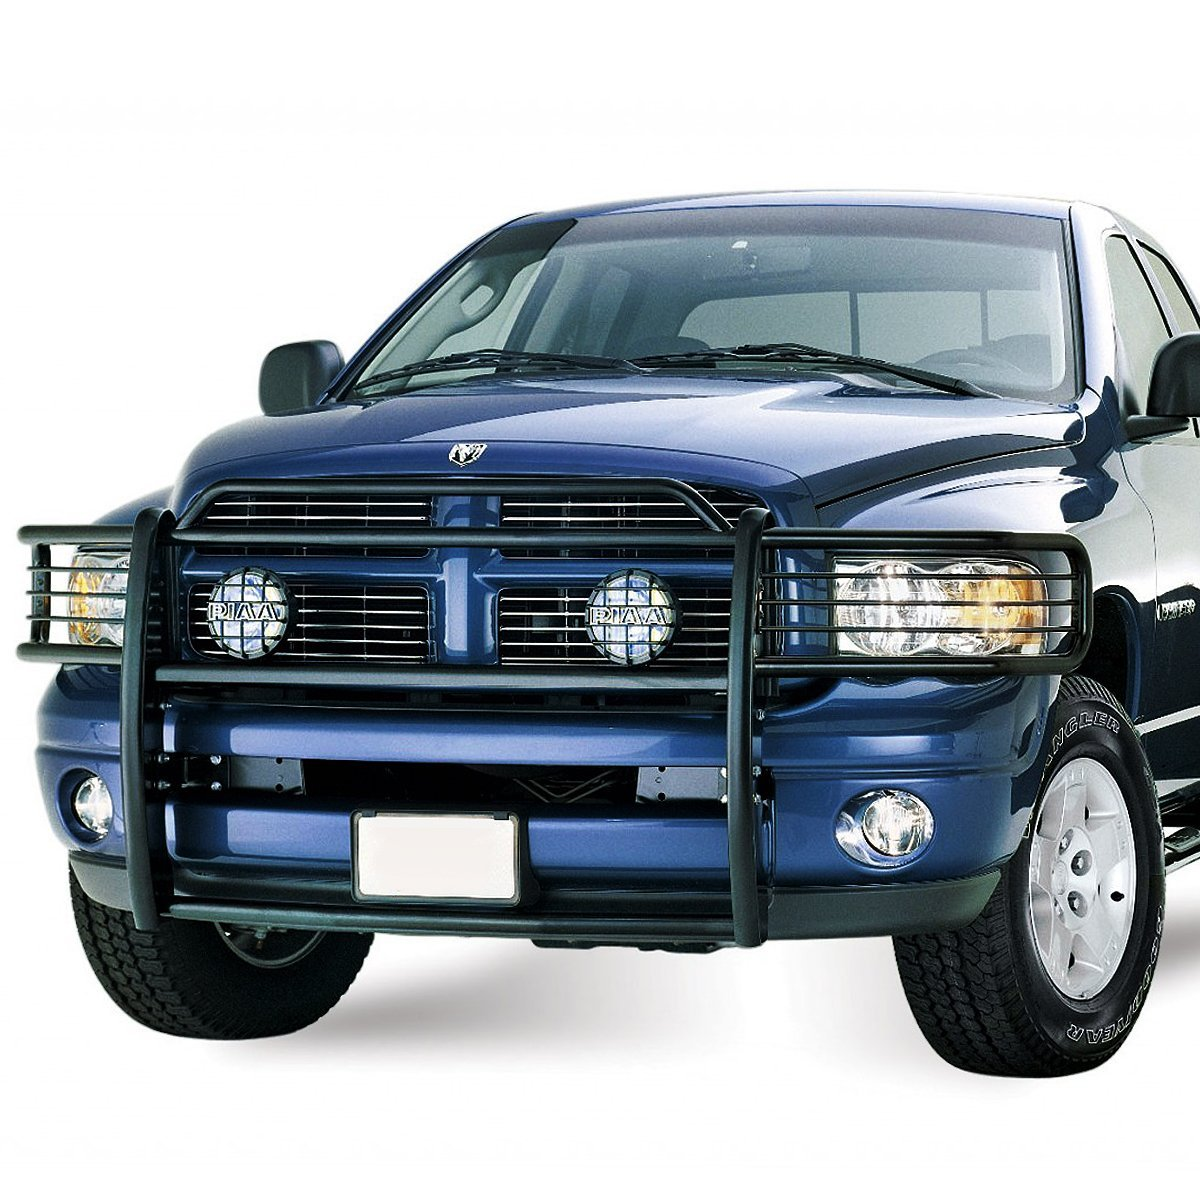 02 05 dodge ram 1500 2500 3500 front bumper protector brush grille guard black. Black Bedroom Furniture Sets. Home Design Ideas